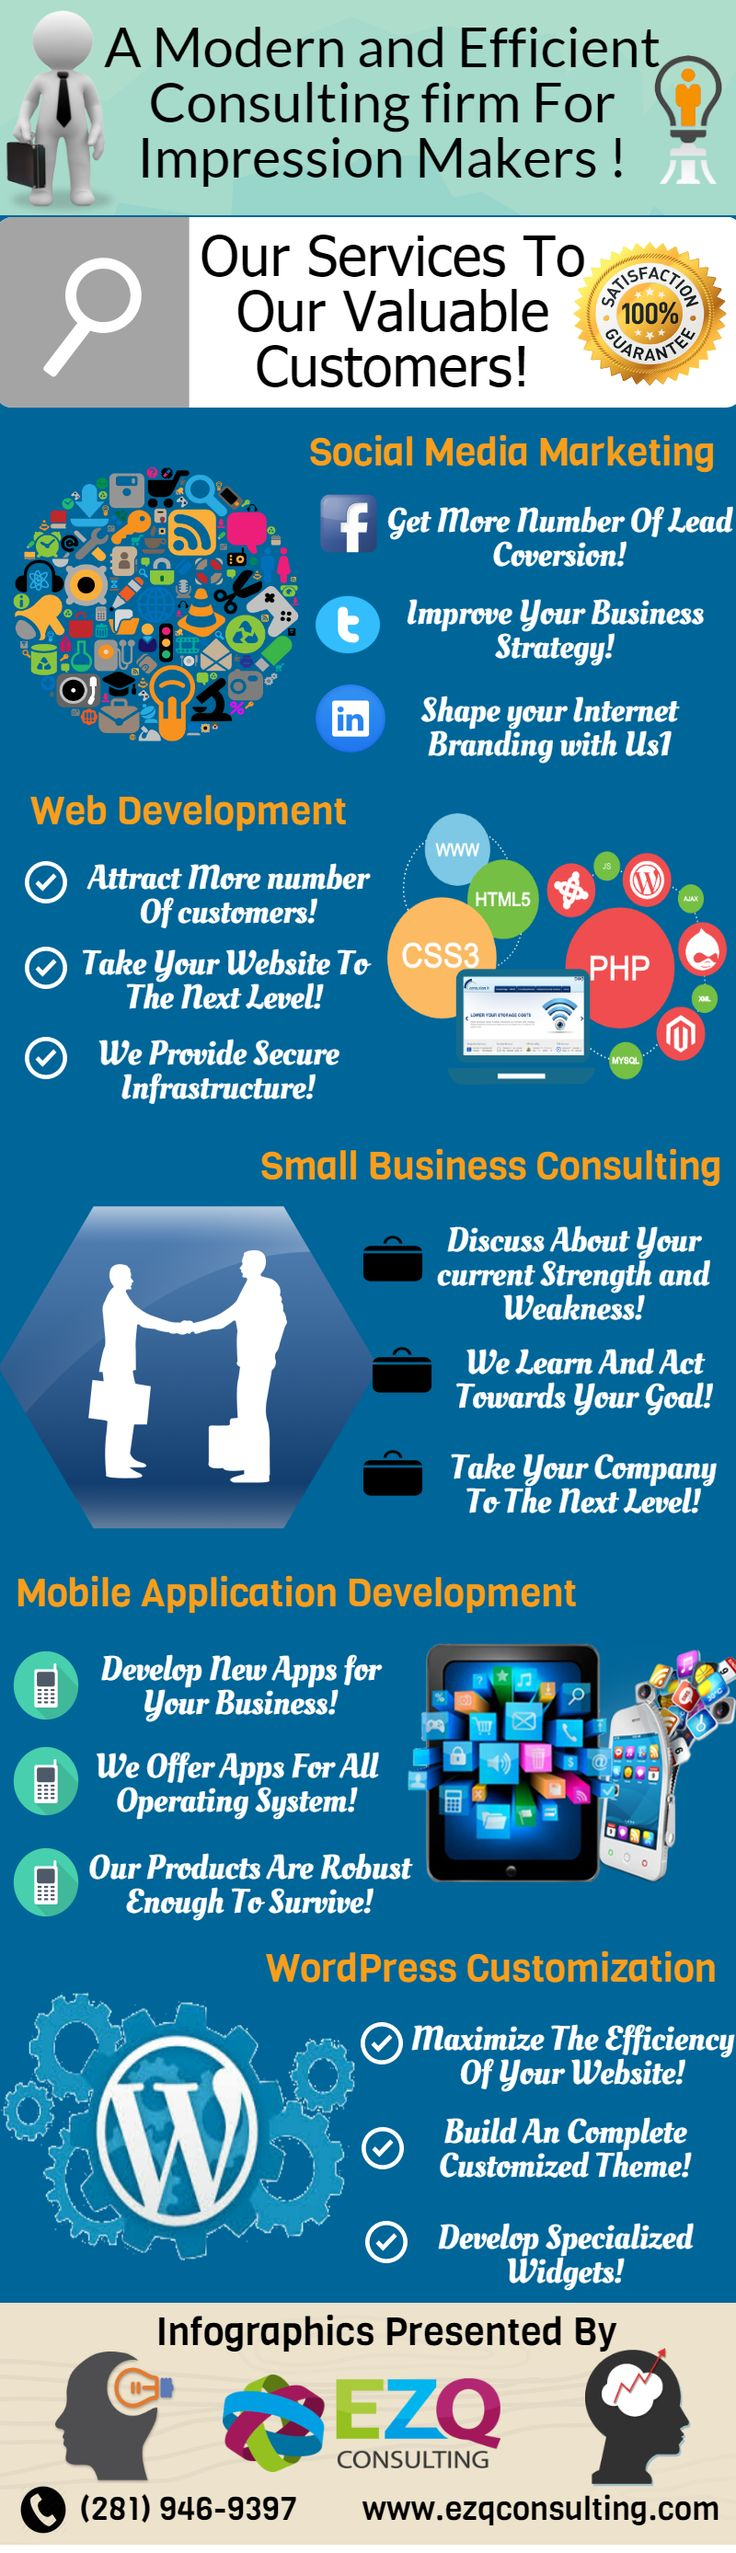 A Modern and Unique Consulting Firm for Impression Makers in Houston:- EZQ Consulting, offers everything that is expected to get your organization prepared to command the business sector. It's our center procedure to persuade potential organizations and new businesses to create, make and execute different business techniques to develop their web situating, get upper hand and eventually, add to their enhanced piece of the overall industry. Call us Today (281) 946-9397.